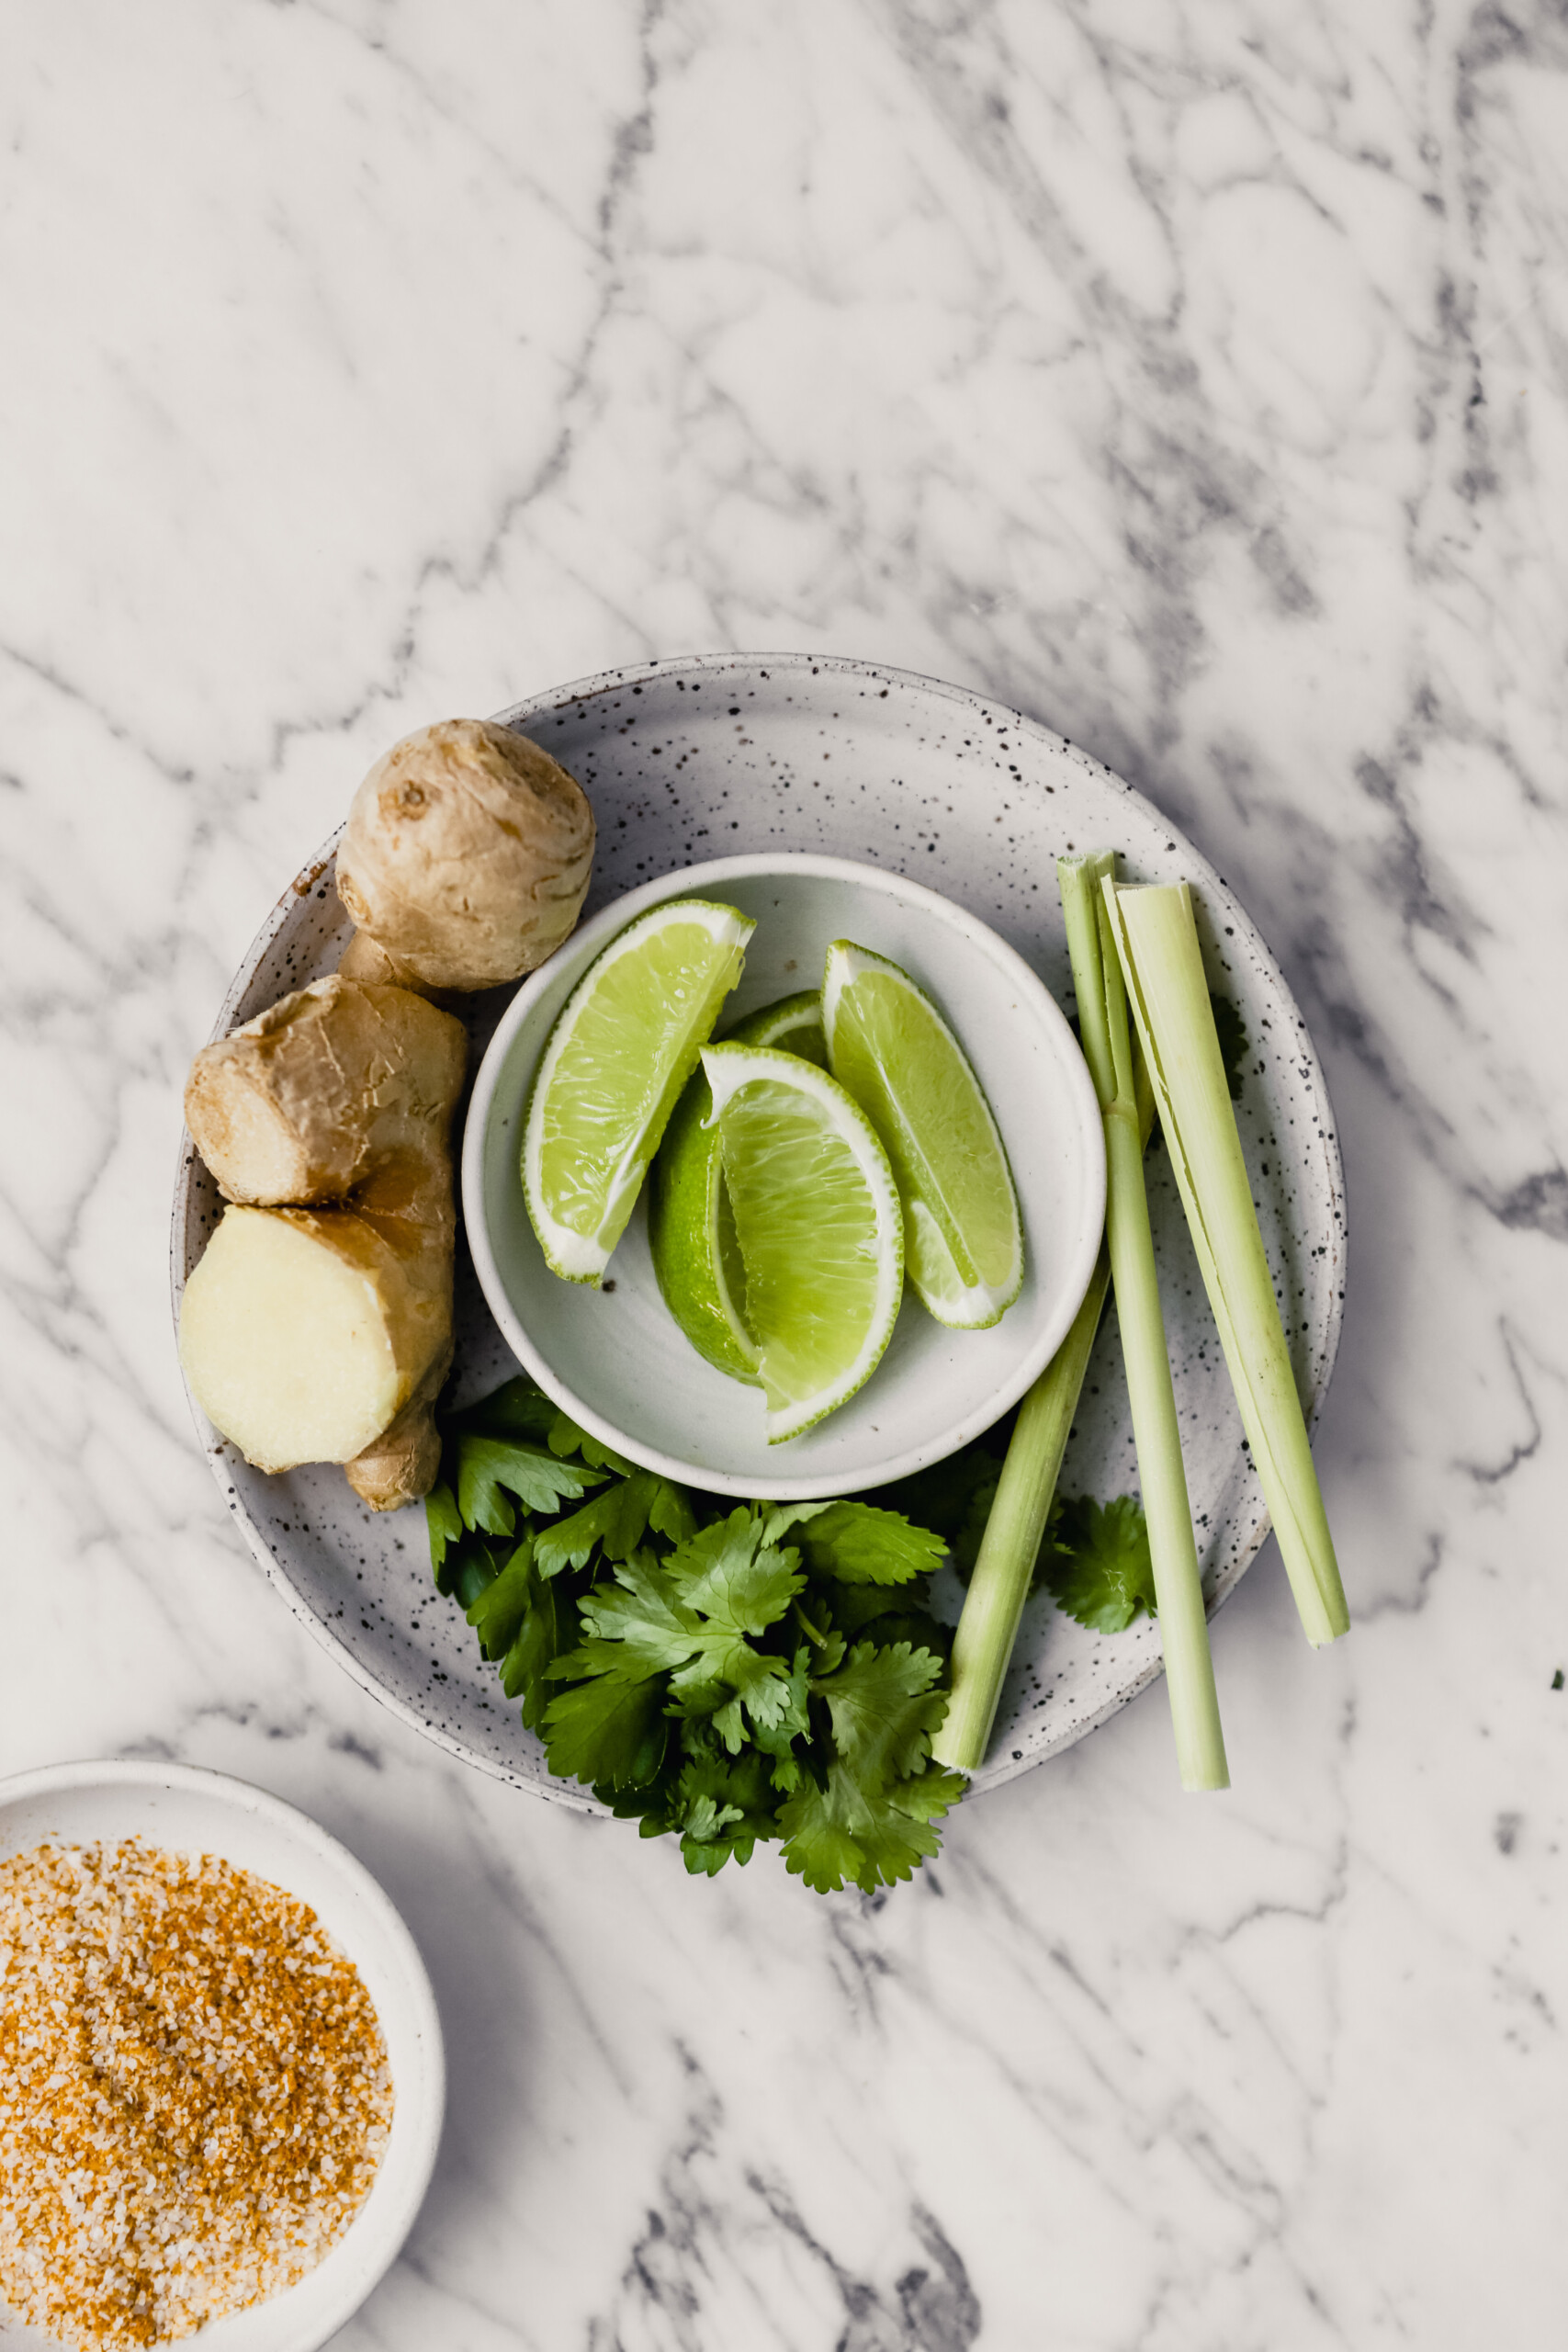 Photograph of ginger, lime wedges, lemongrass and fresh herbs arranged on a white speckled plate